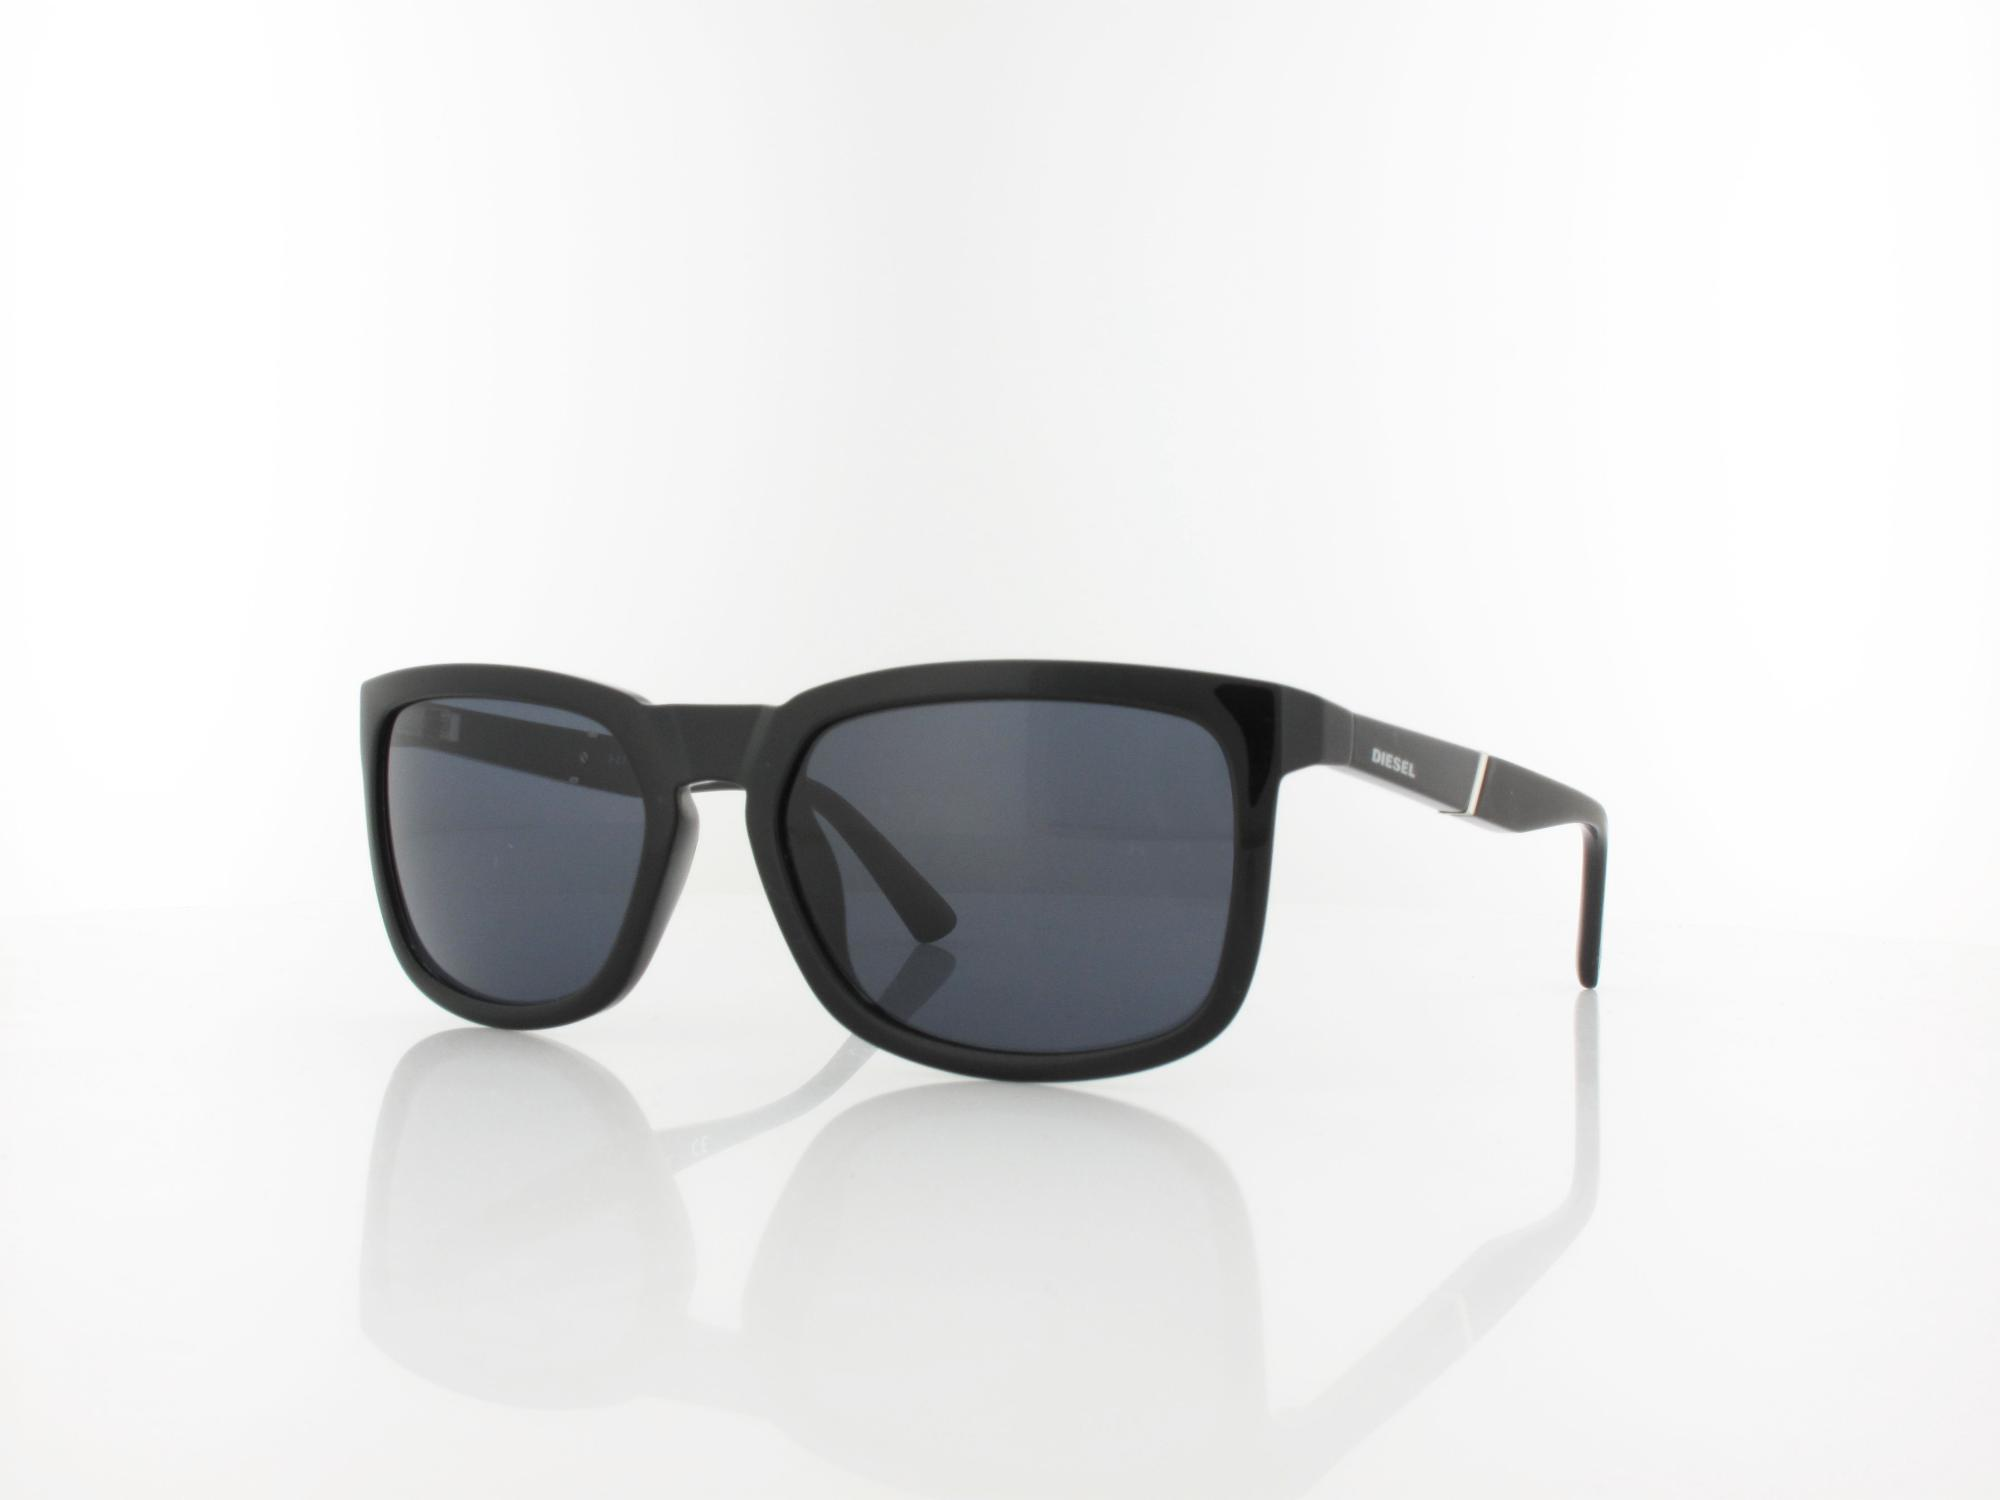 Diesel | DL0262 01A 56 | shiny black / grey